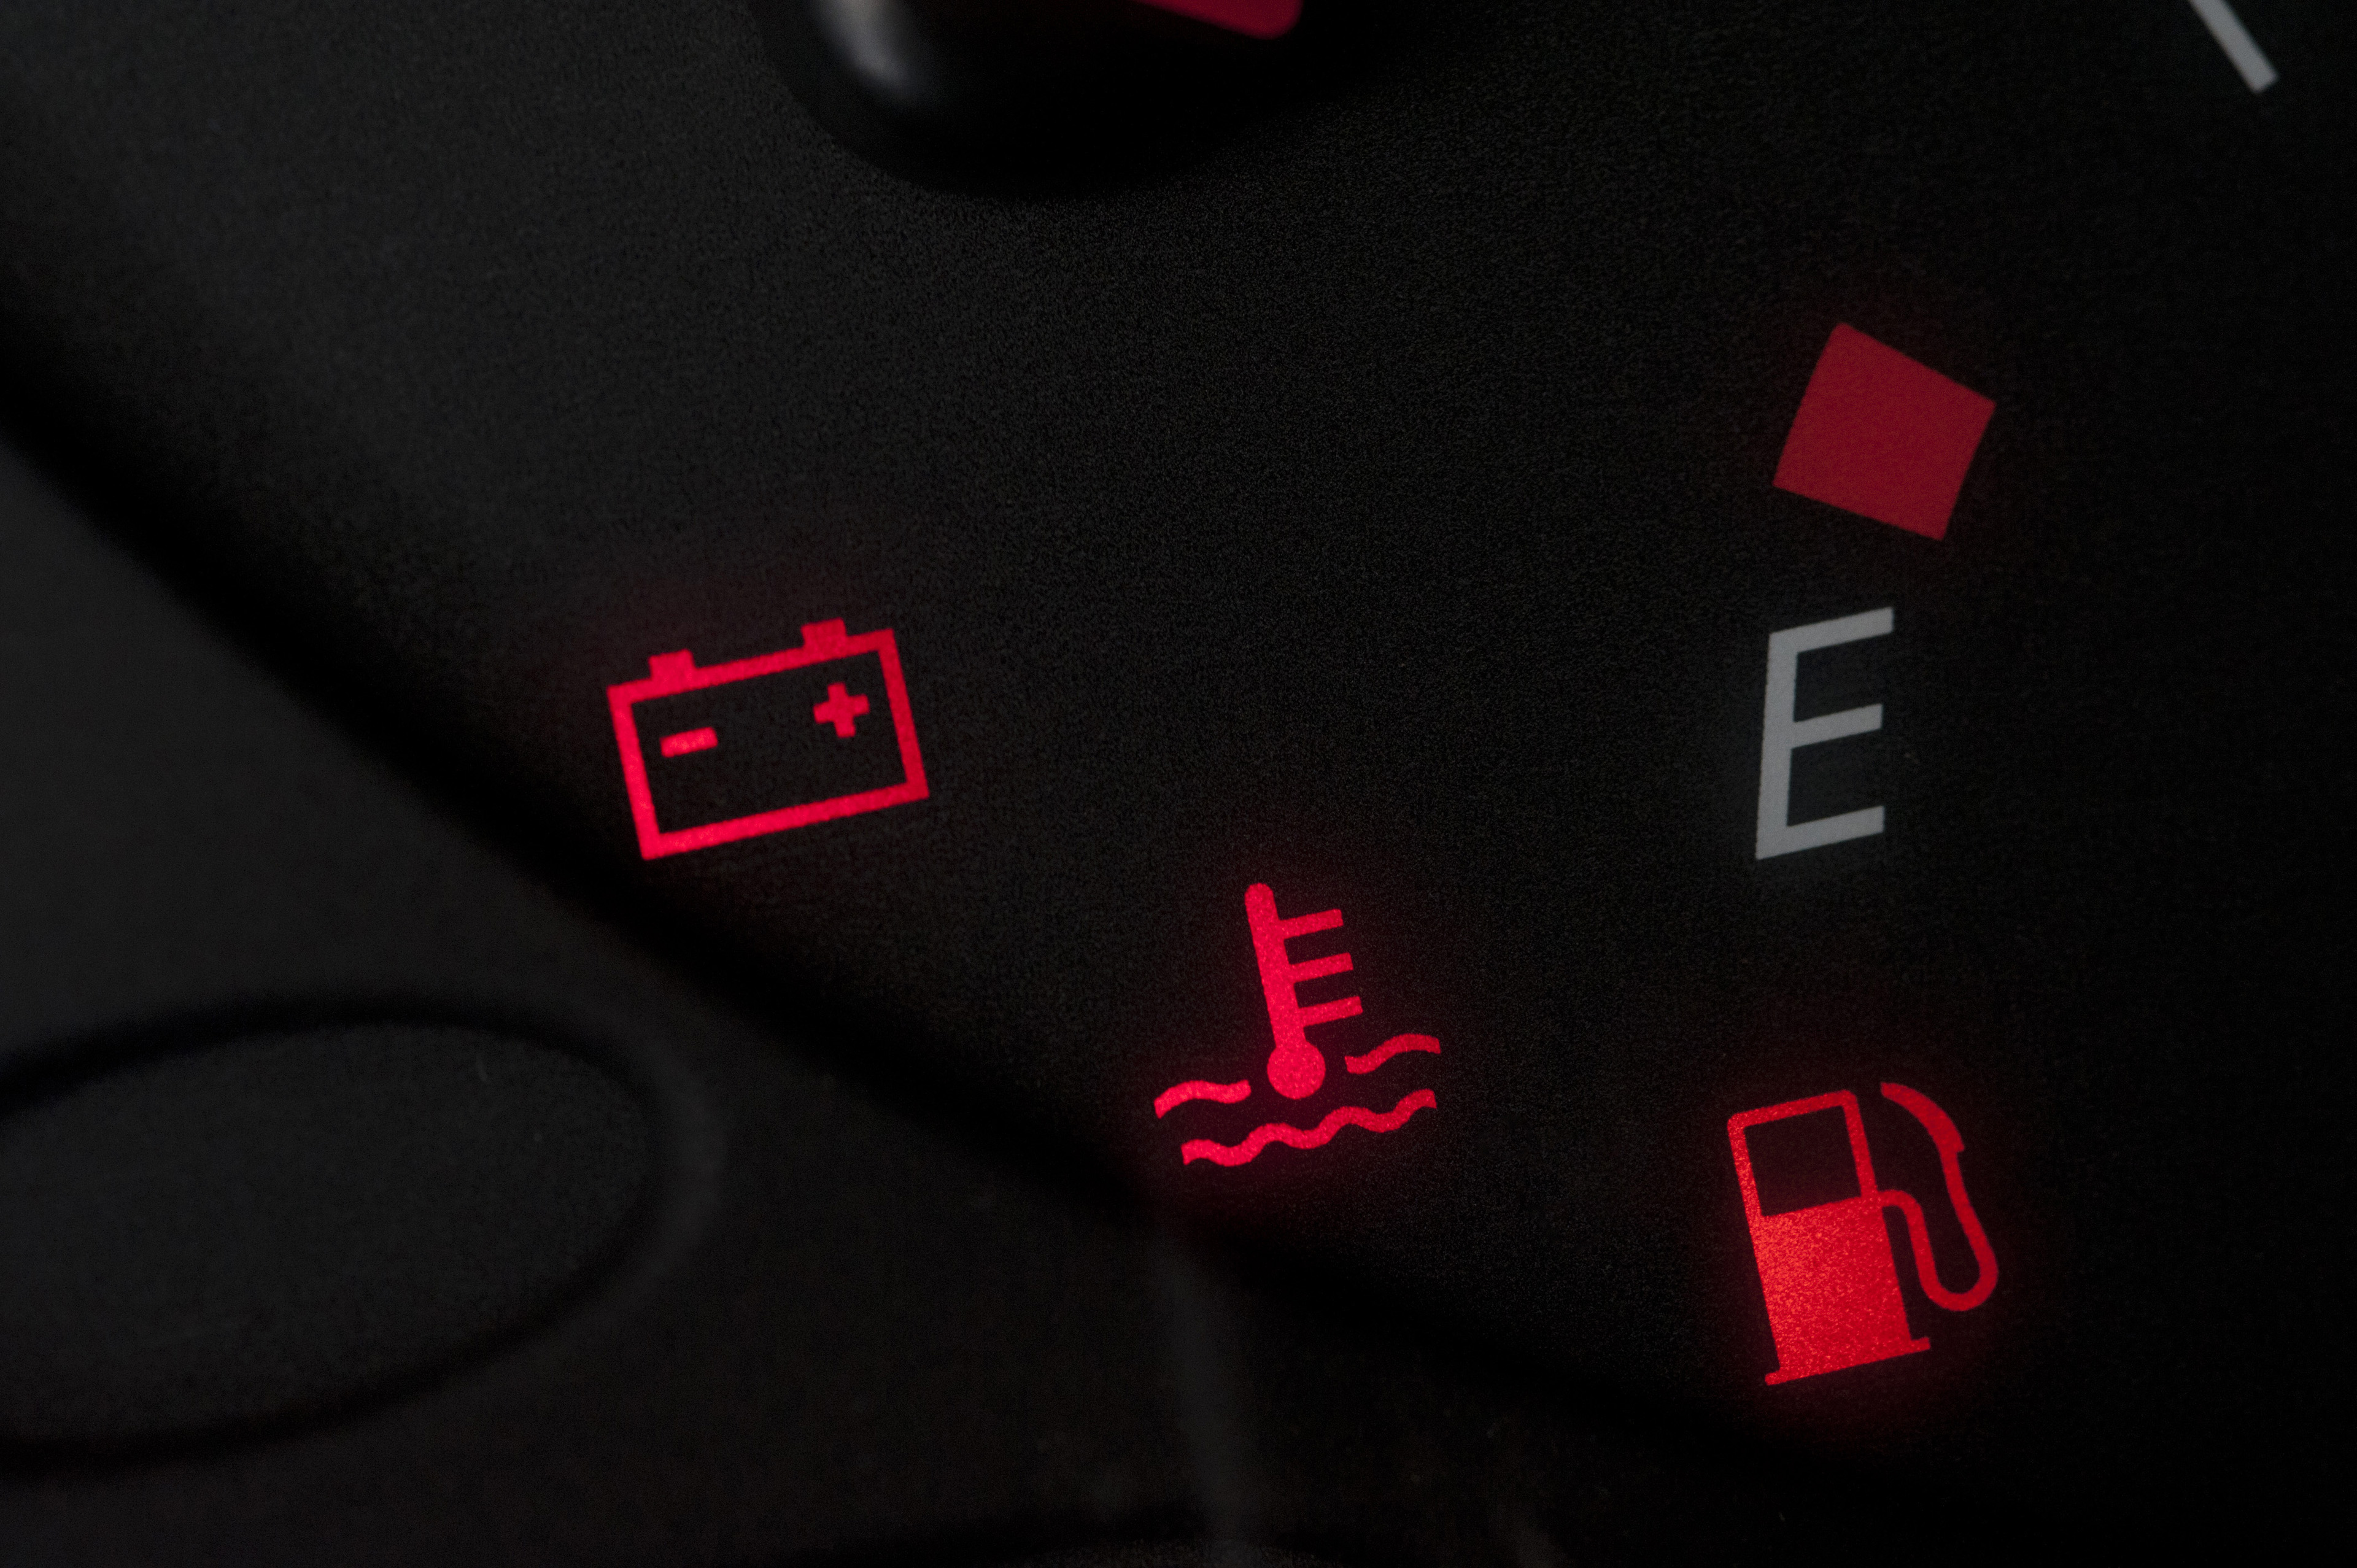 Illuminated red warning lights on a car dashboard during the ignition check showing the battery, temperature and fuel light